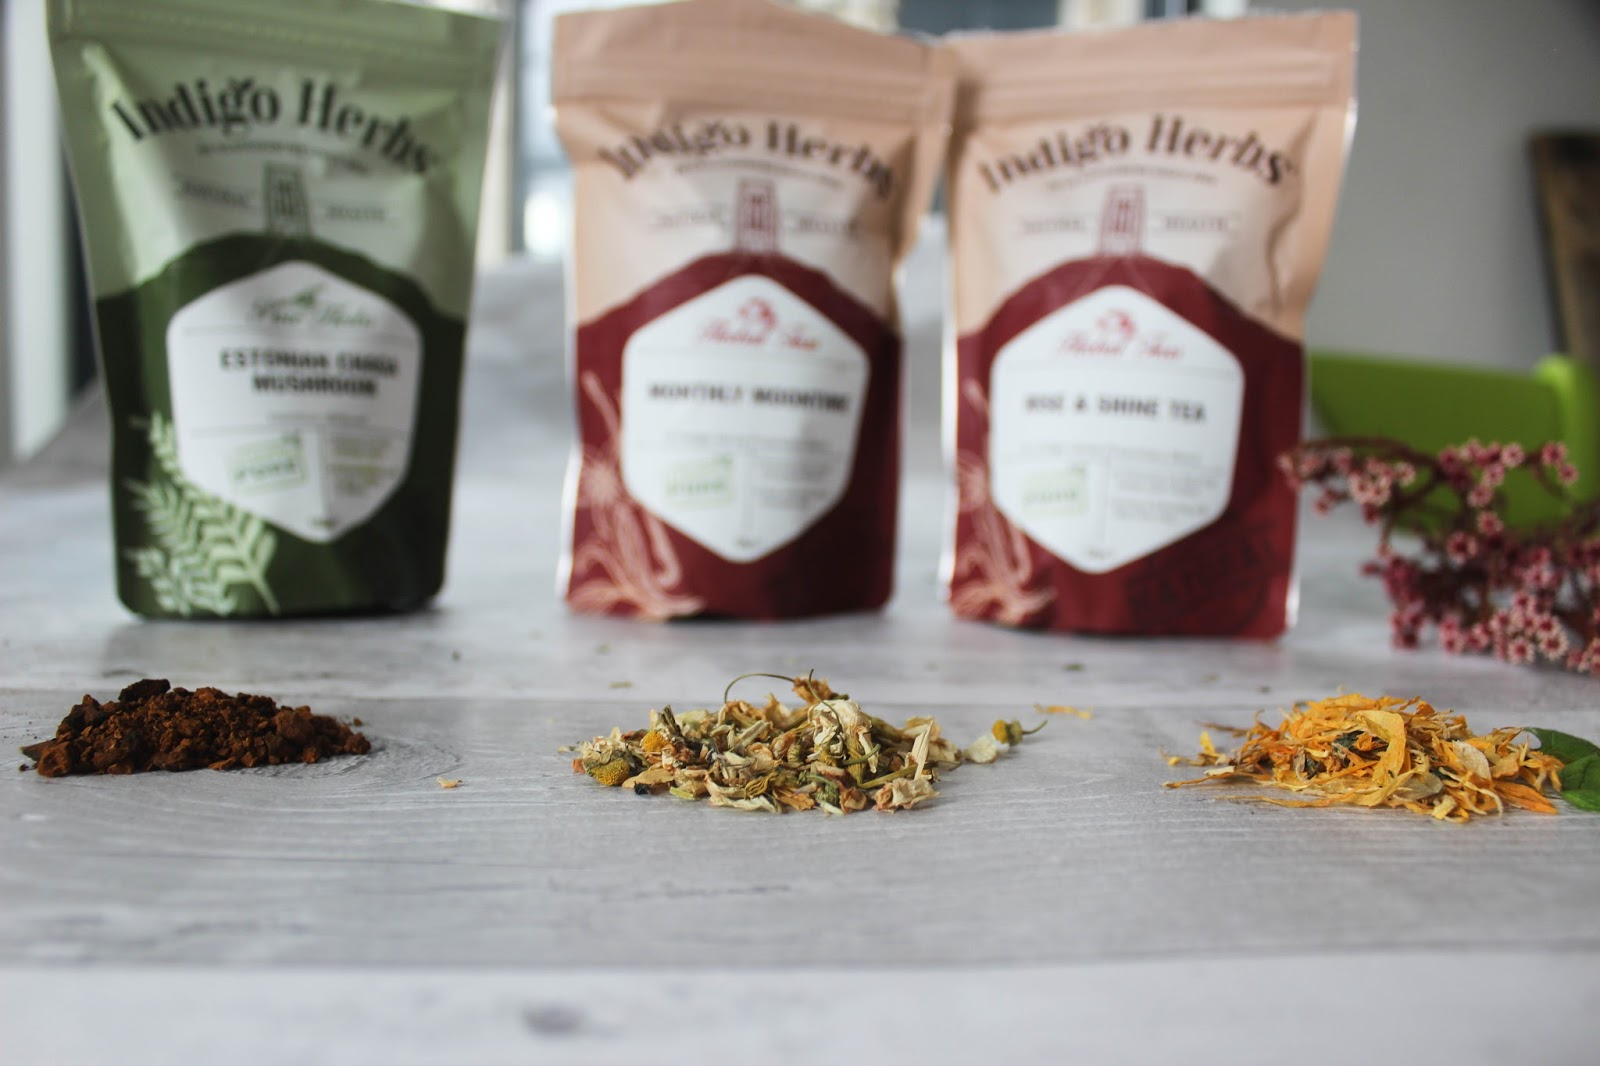 Indigo Herbs Tea review